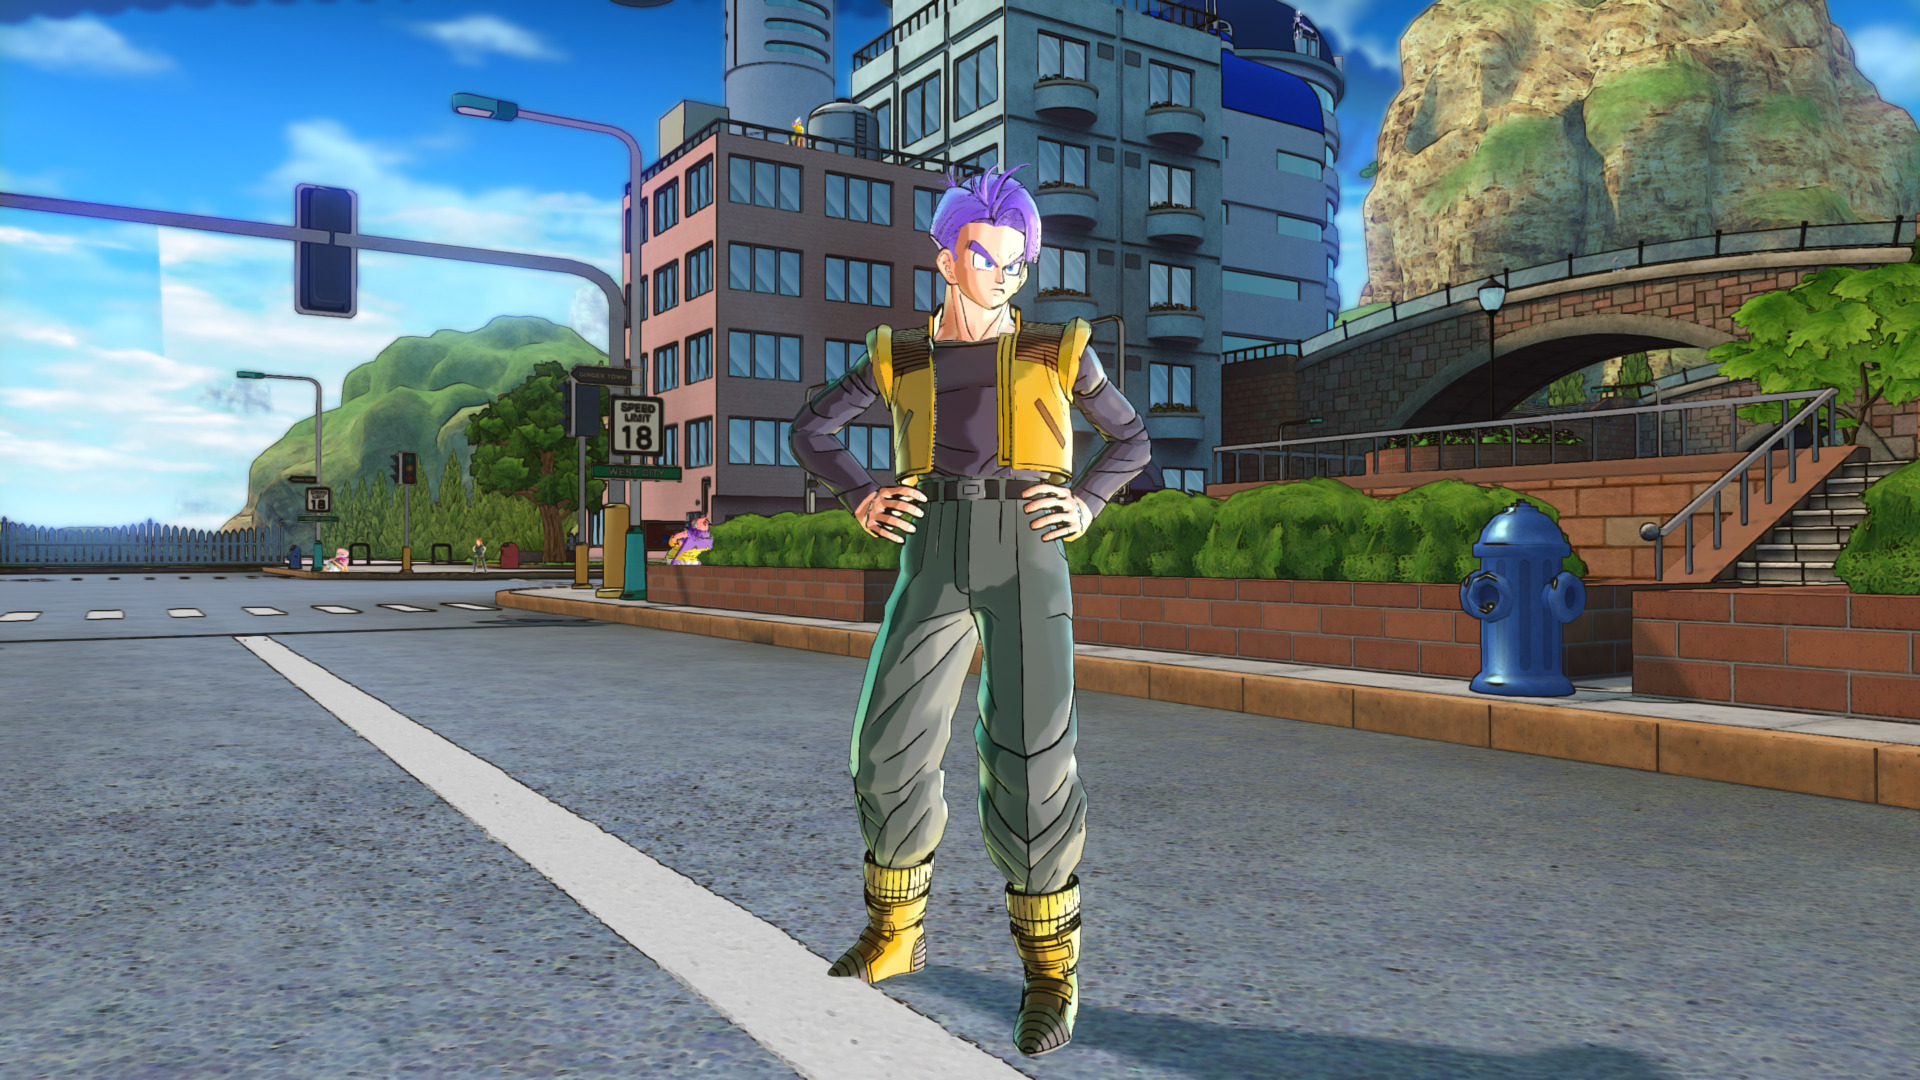 dragon-ball-xenoverse-2-future-trunks-outfit